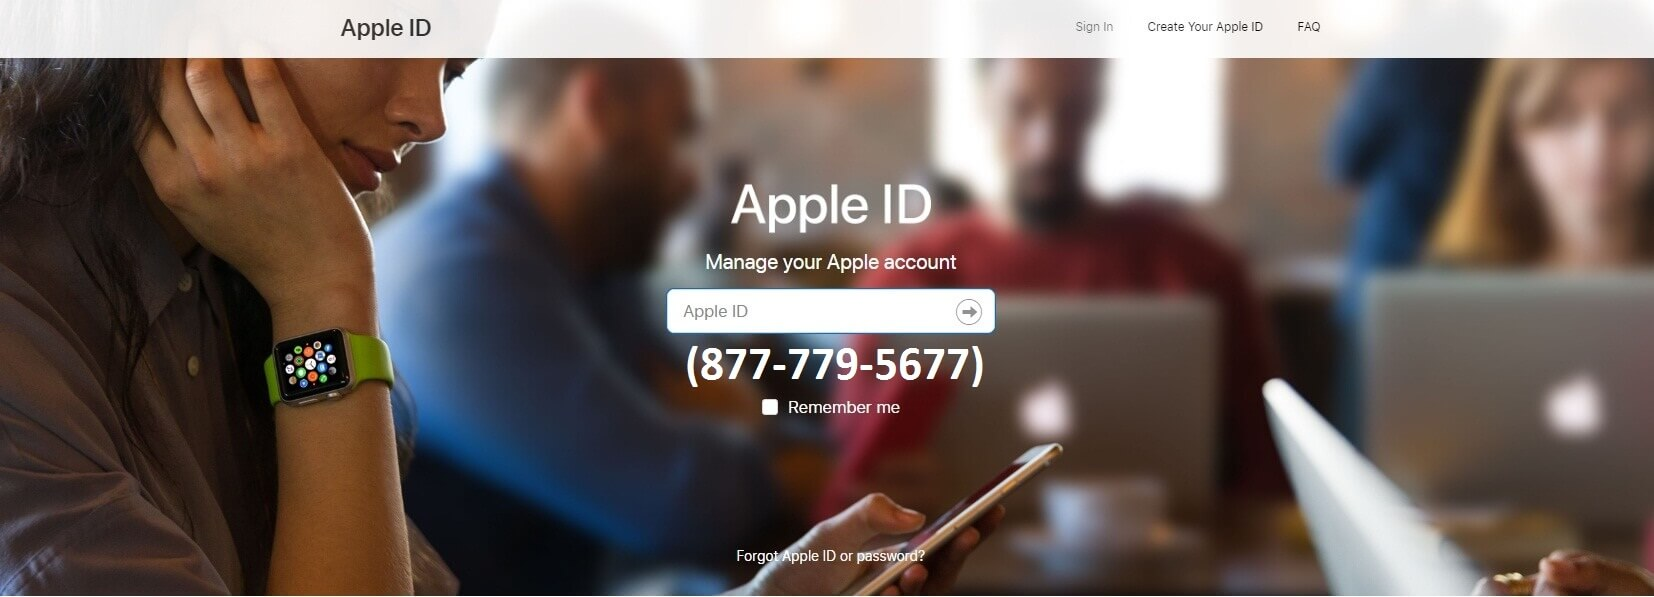 Apple ID Support (877-779-5677) to Recover Forgot Apple ID Password